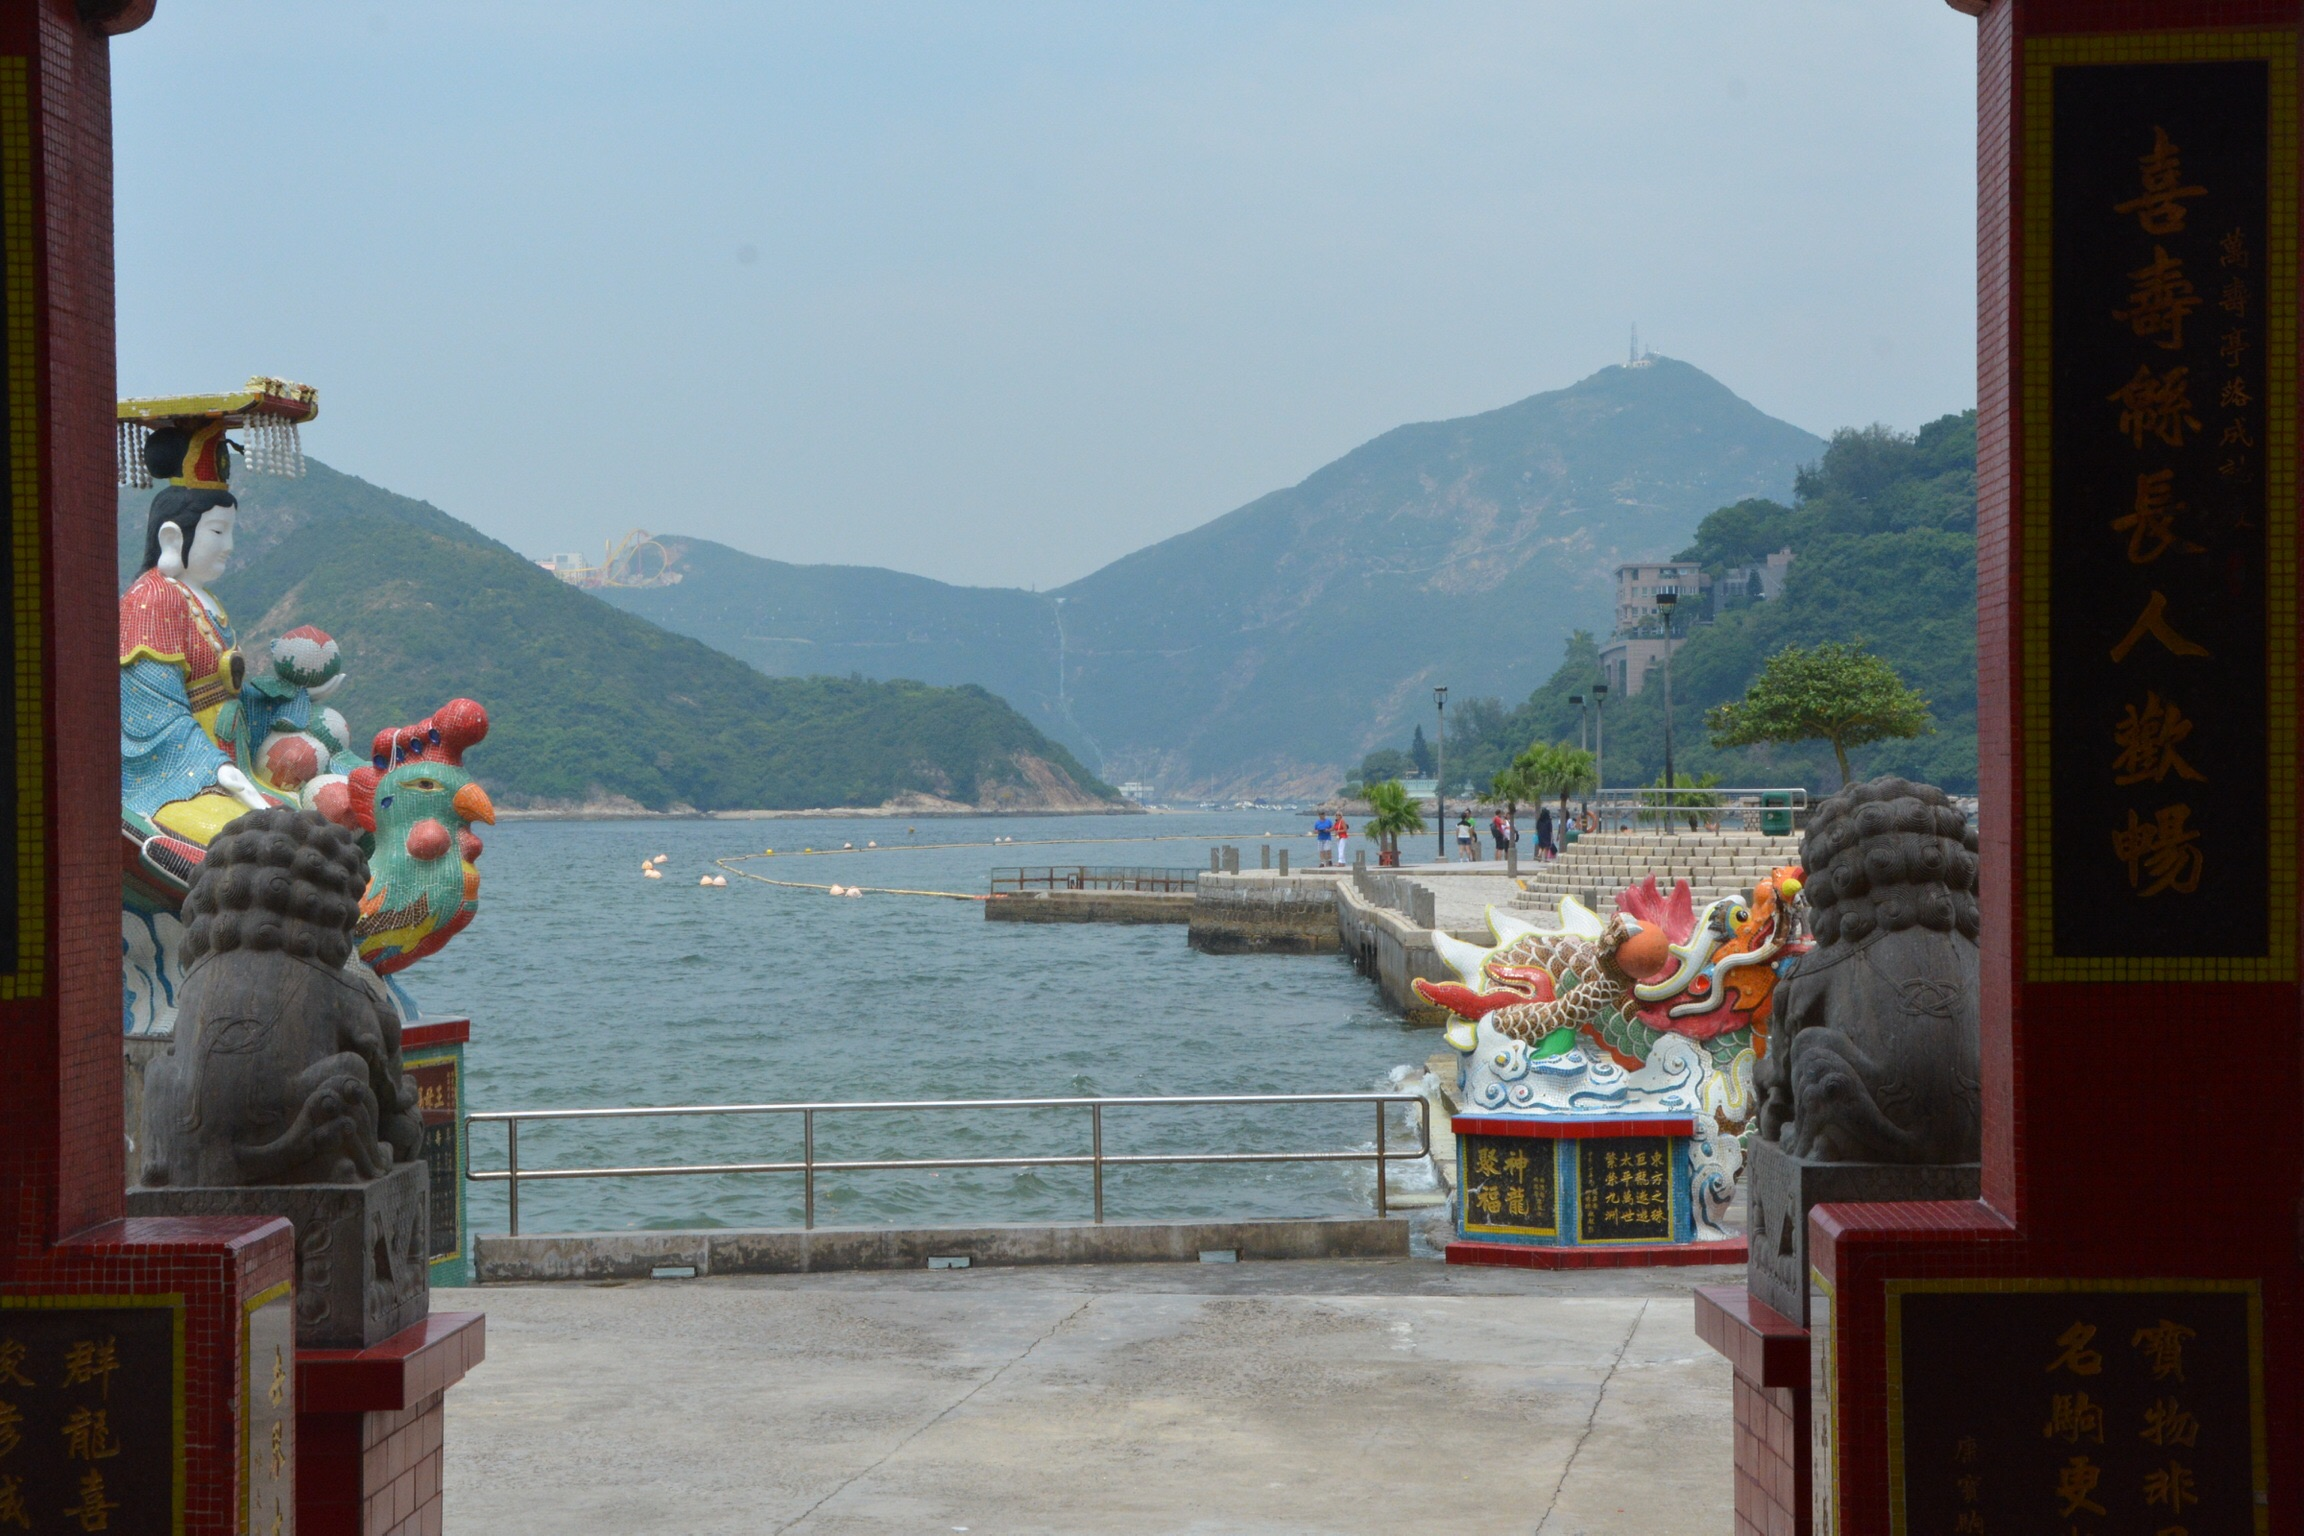 Temples, statues and a view of Repulse Bay.